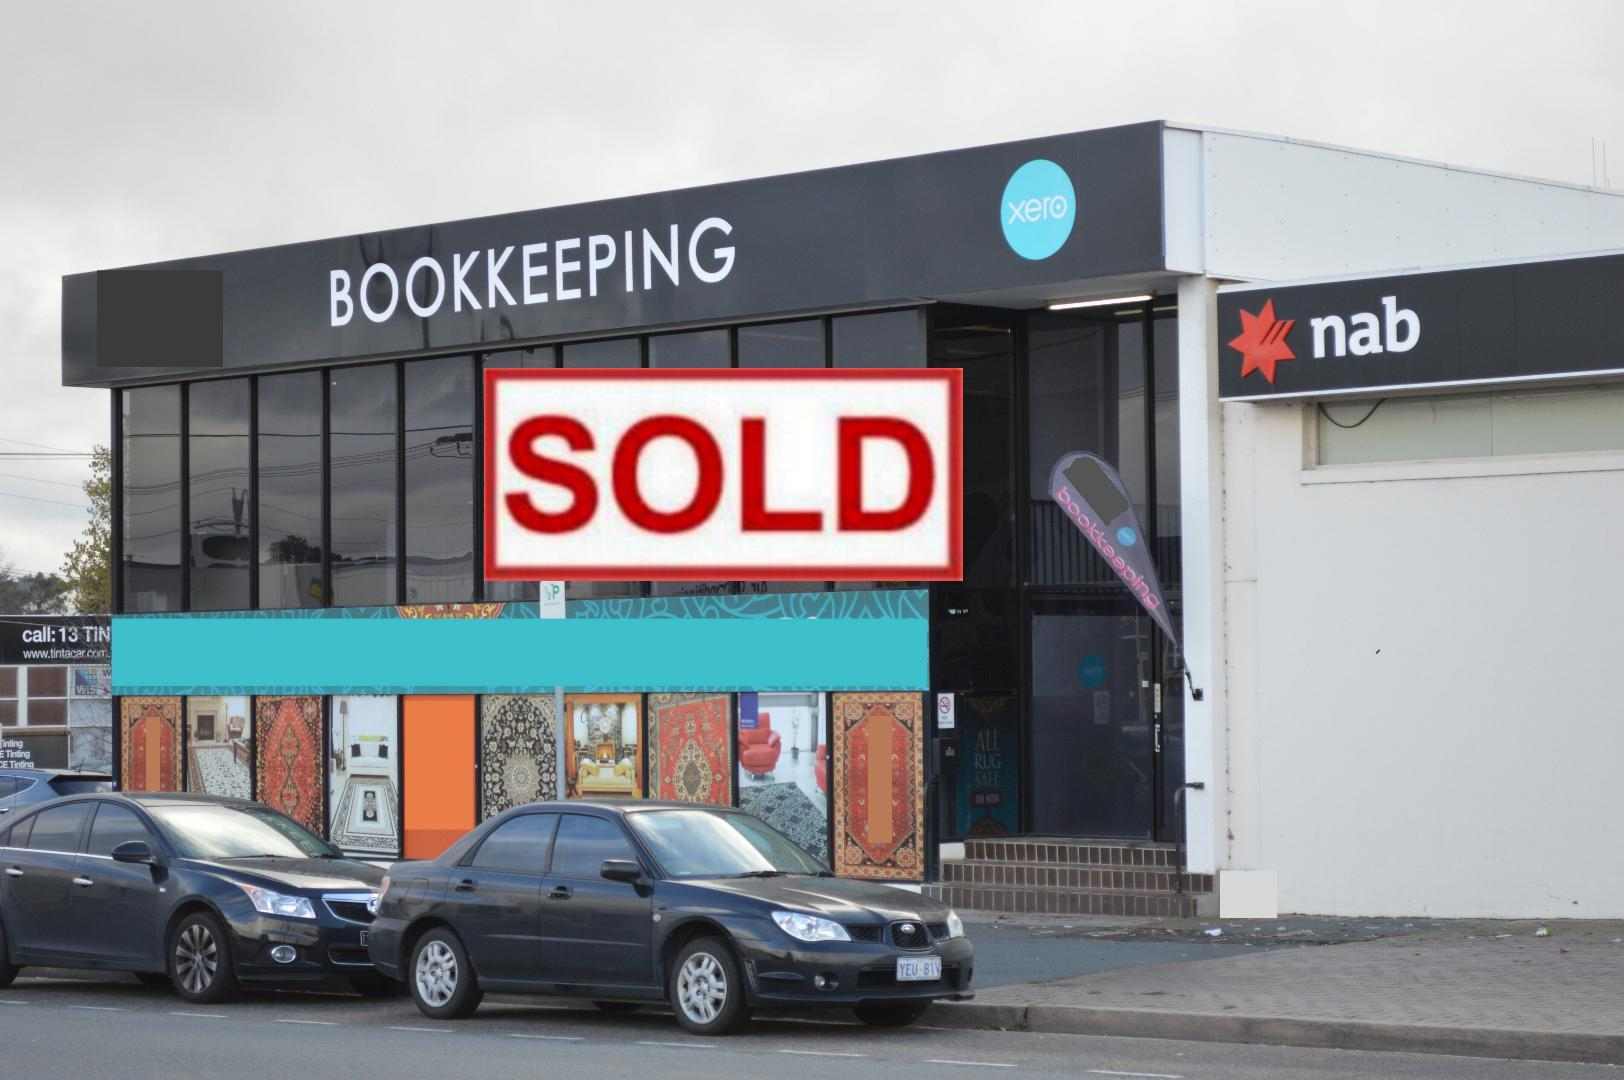 BOOKKEEPING BUSINESS CANBERRA for SALE – $595k